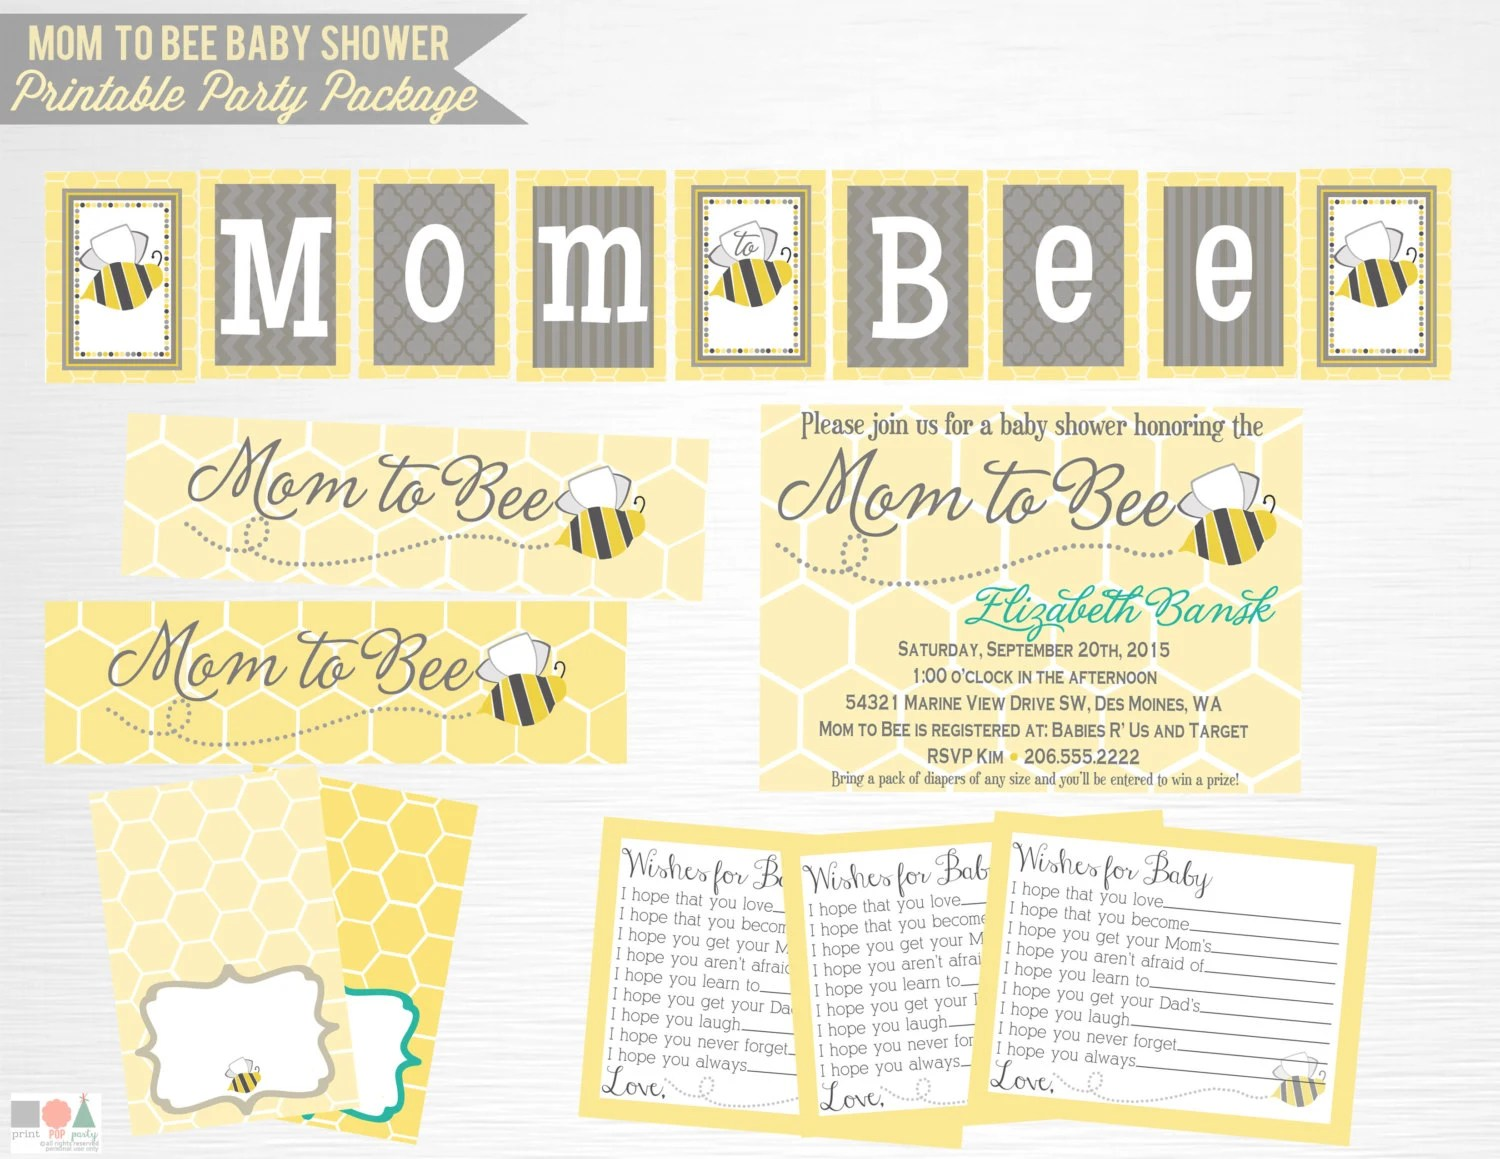 Mom To Bee Baby Shower Printable Party Package You Print